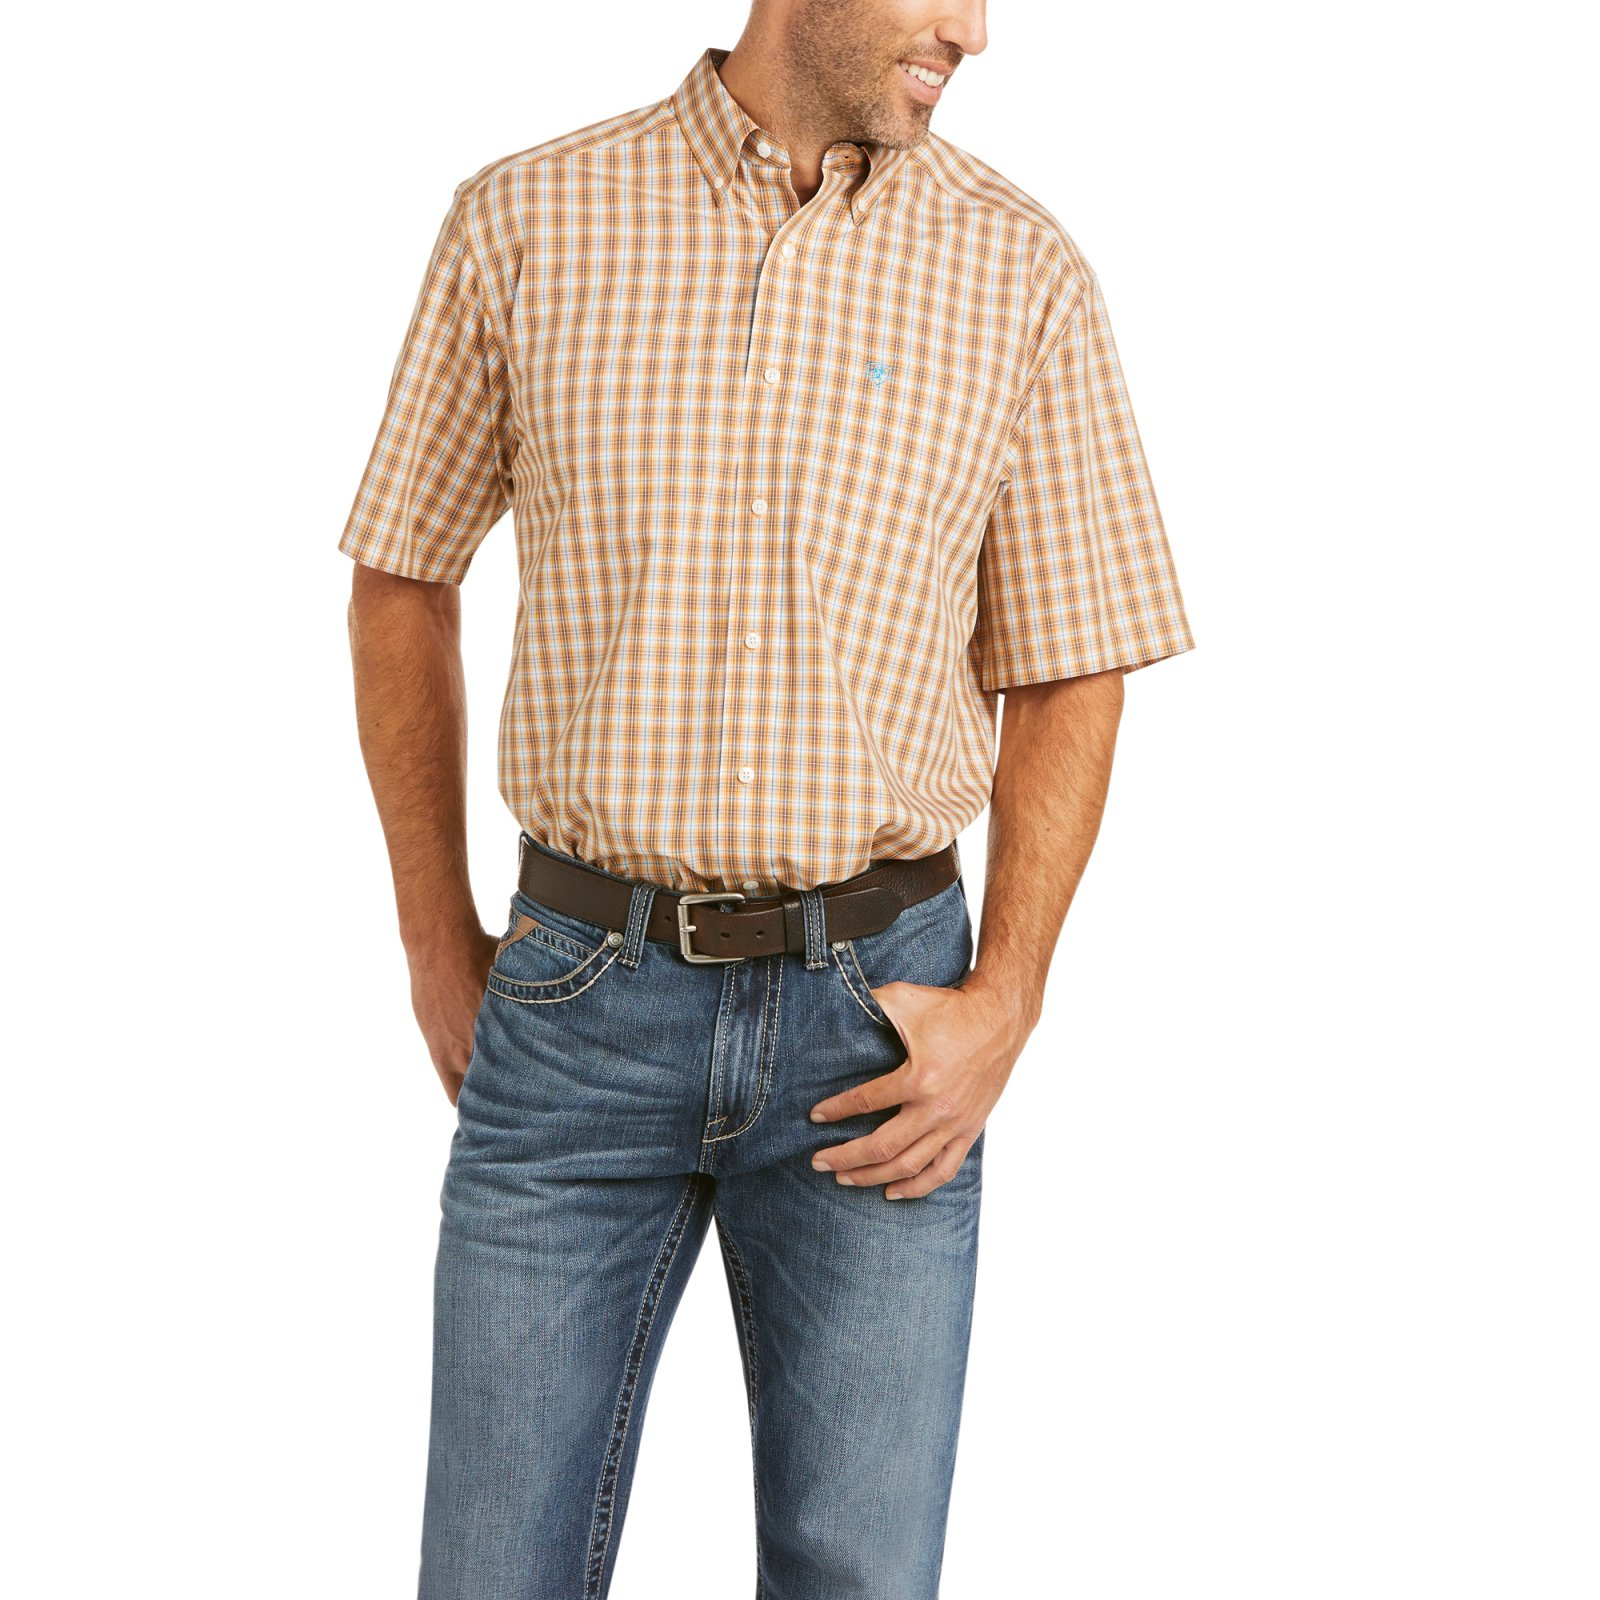 Wrinkle Free Gerald Shirt from Ariat